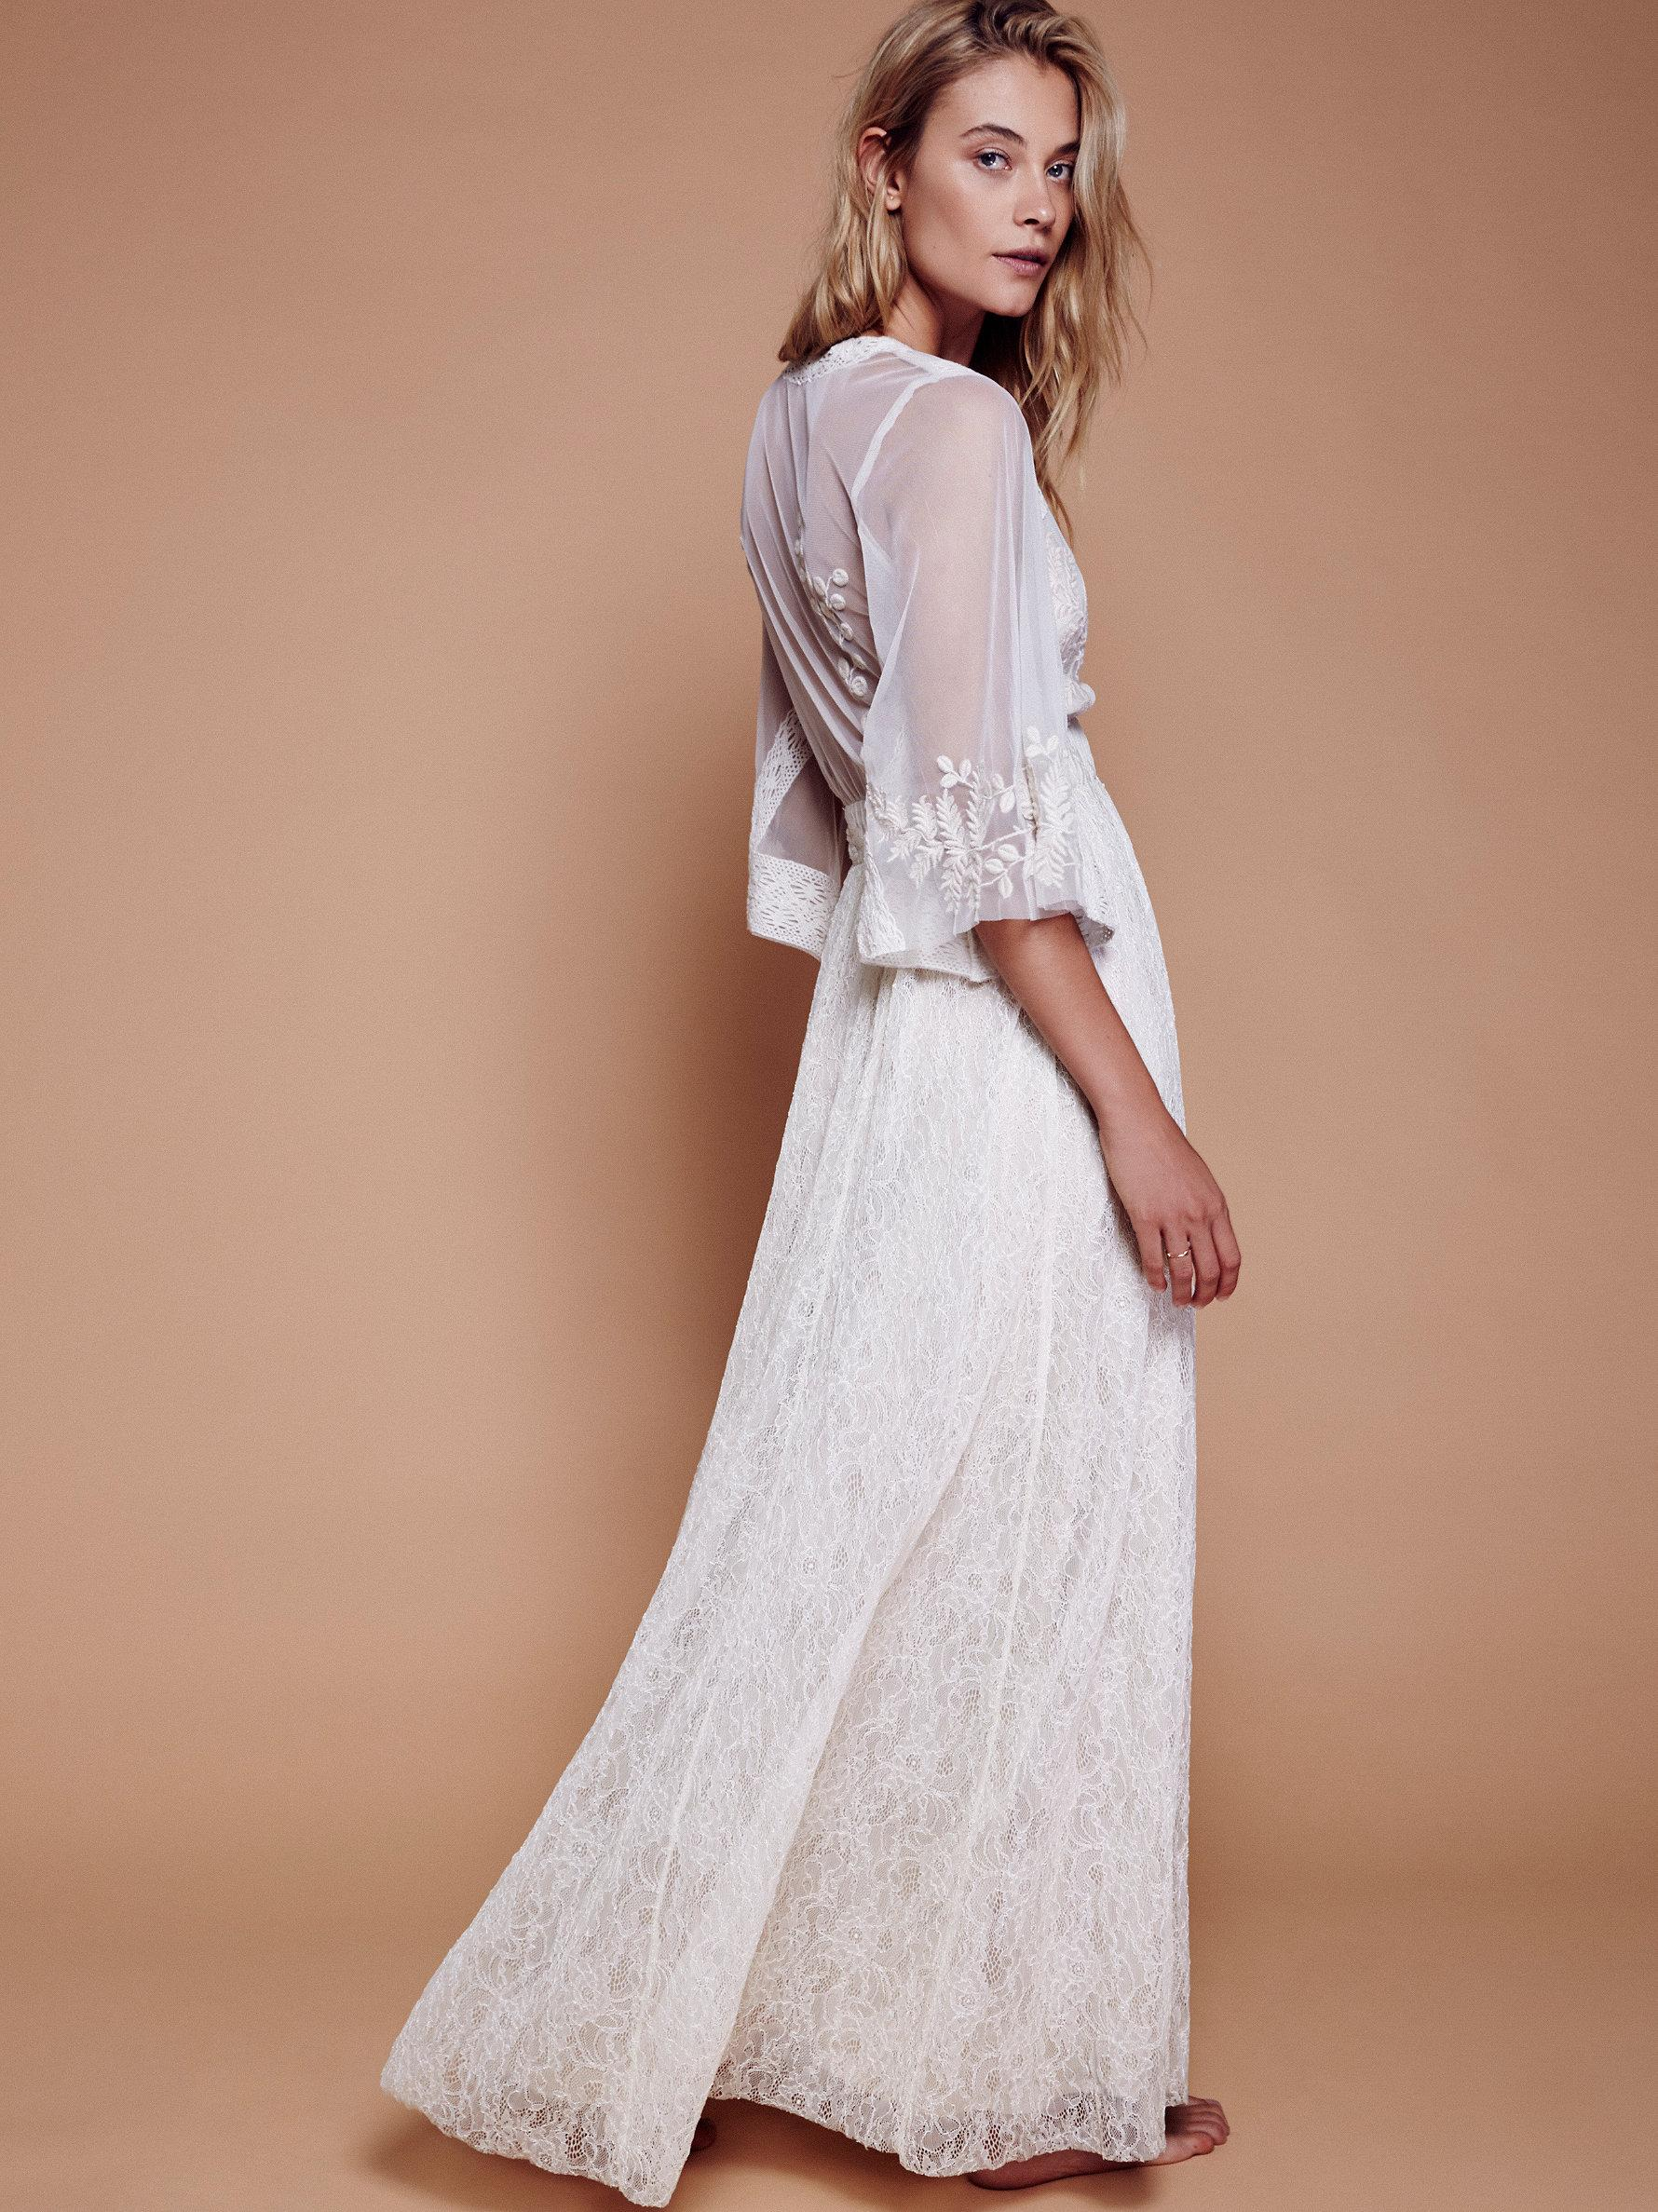 b9094099cf Free People Eclair Lace Maxi Dress in White - Lyst